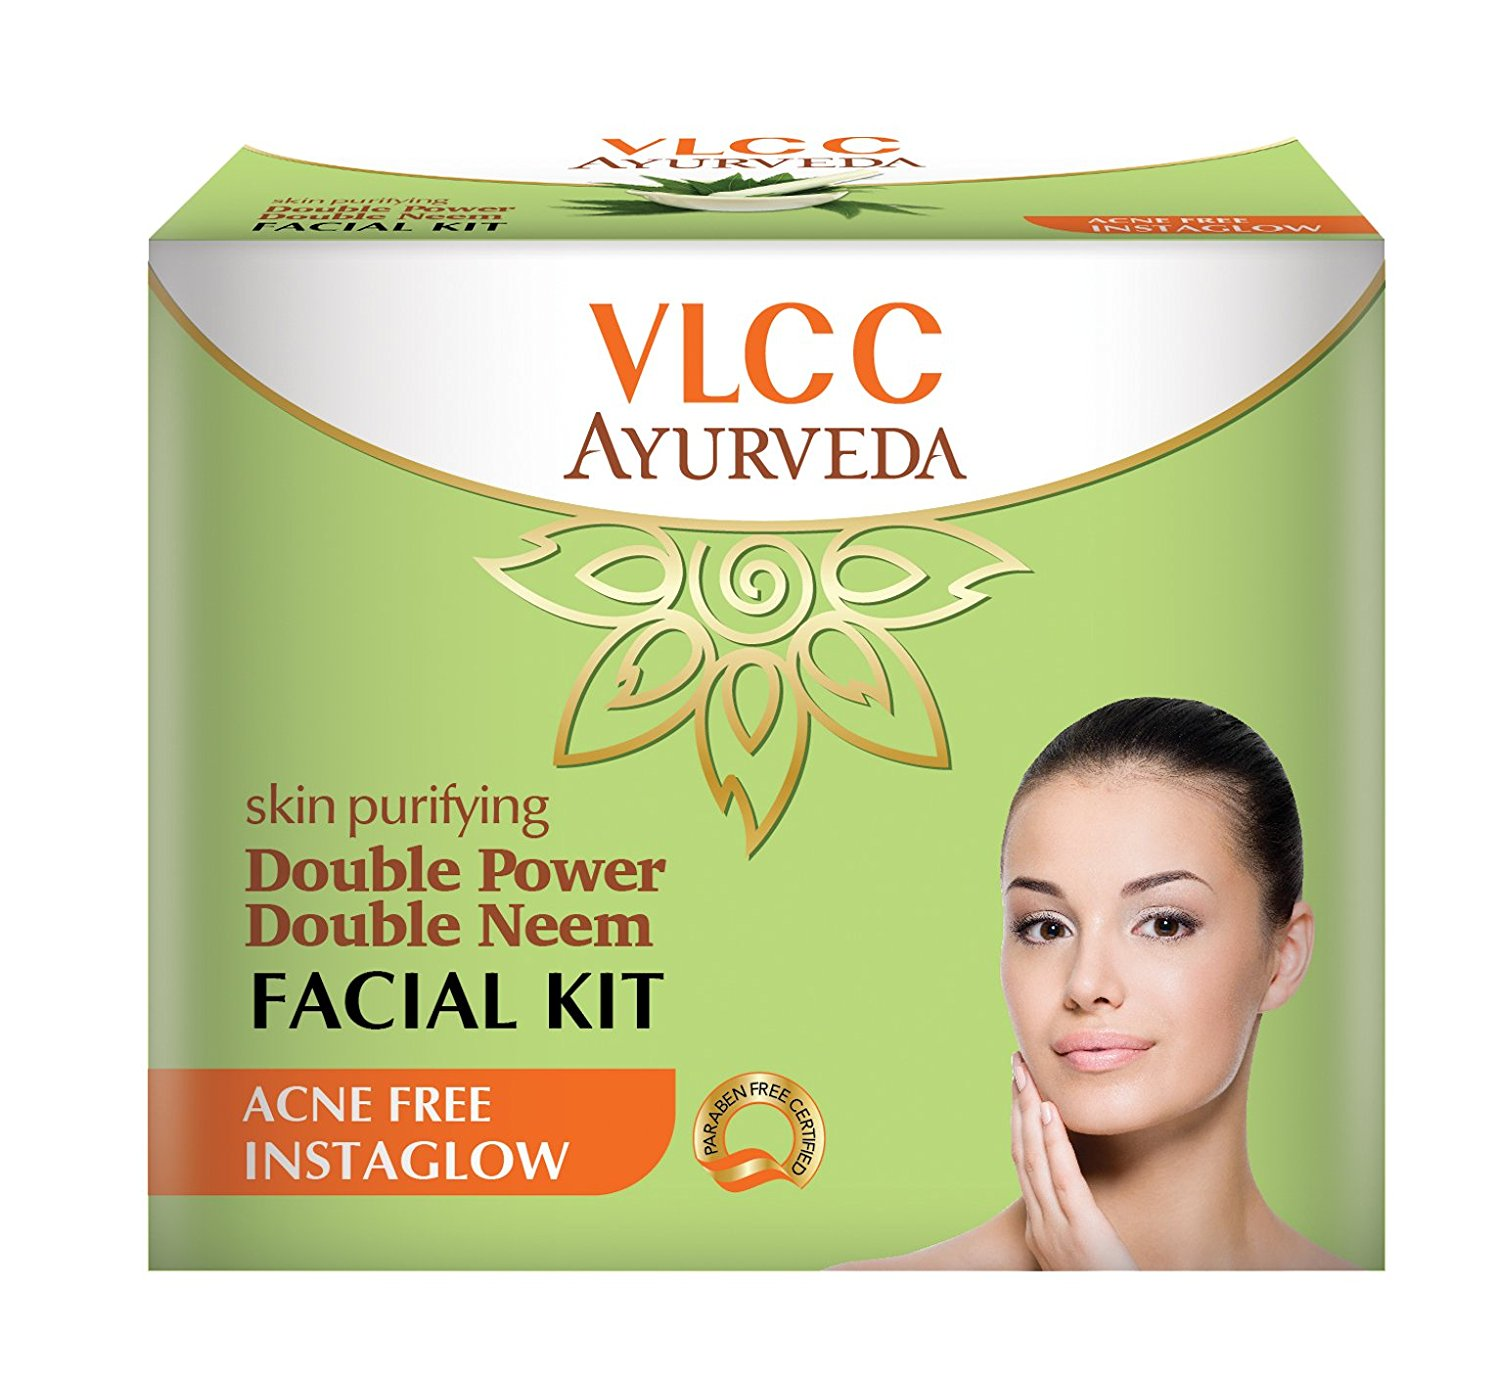 VLCC Ayurveda Skin Purifying Double Power Double Neem Facial Kit- 50g